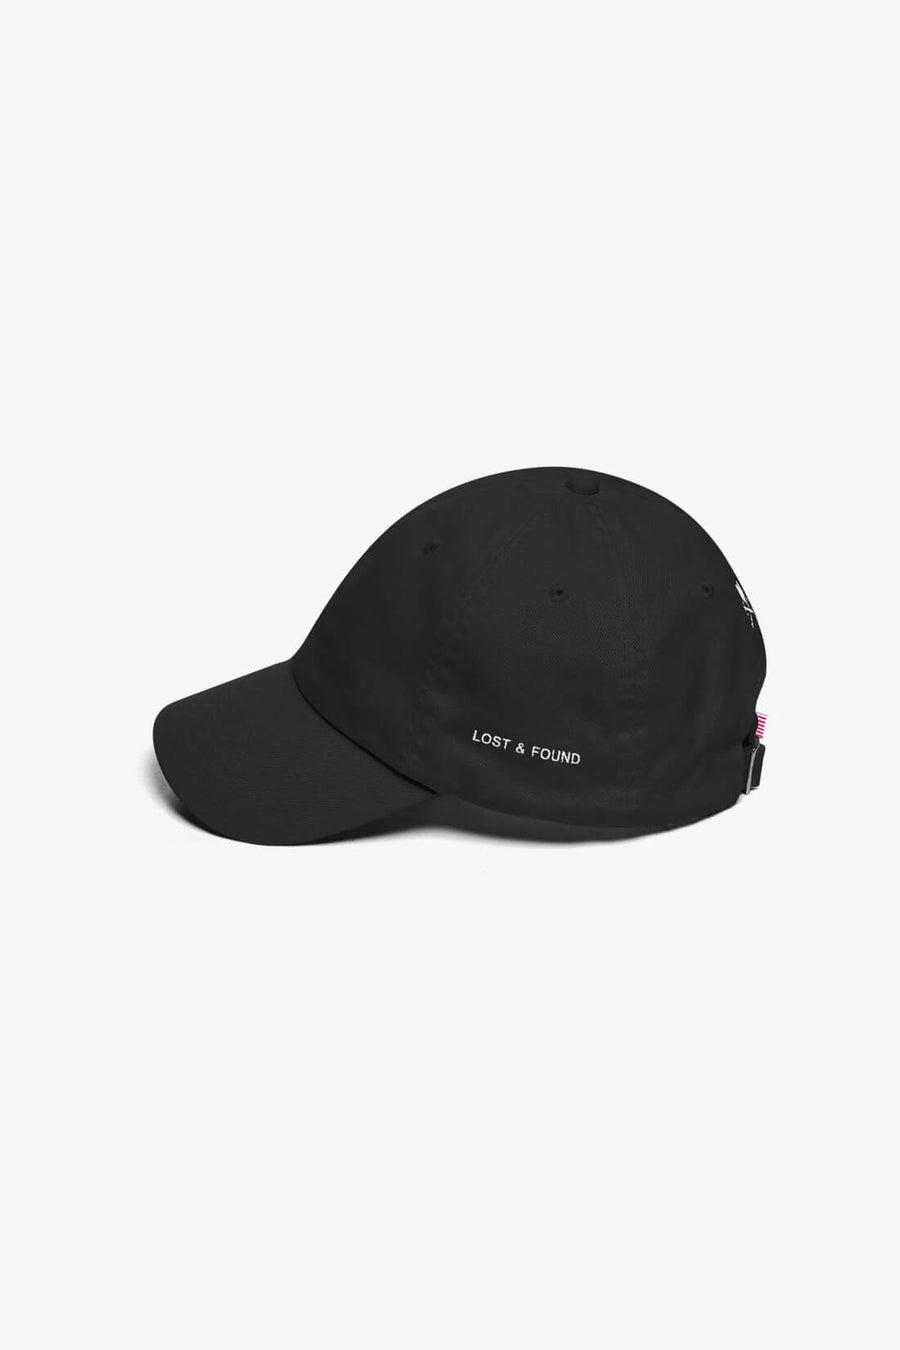 LOST & FOUND TWILL CAP IN BLACK - PURPLE & CHROME